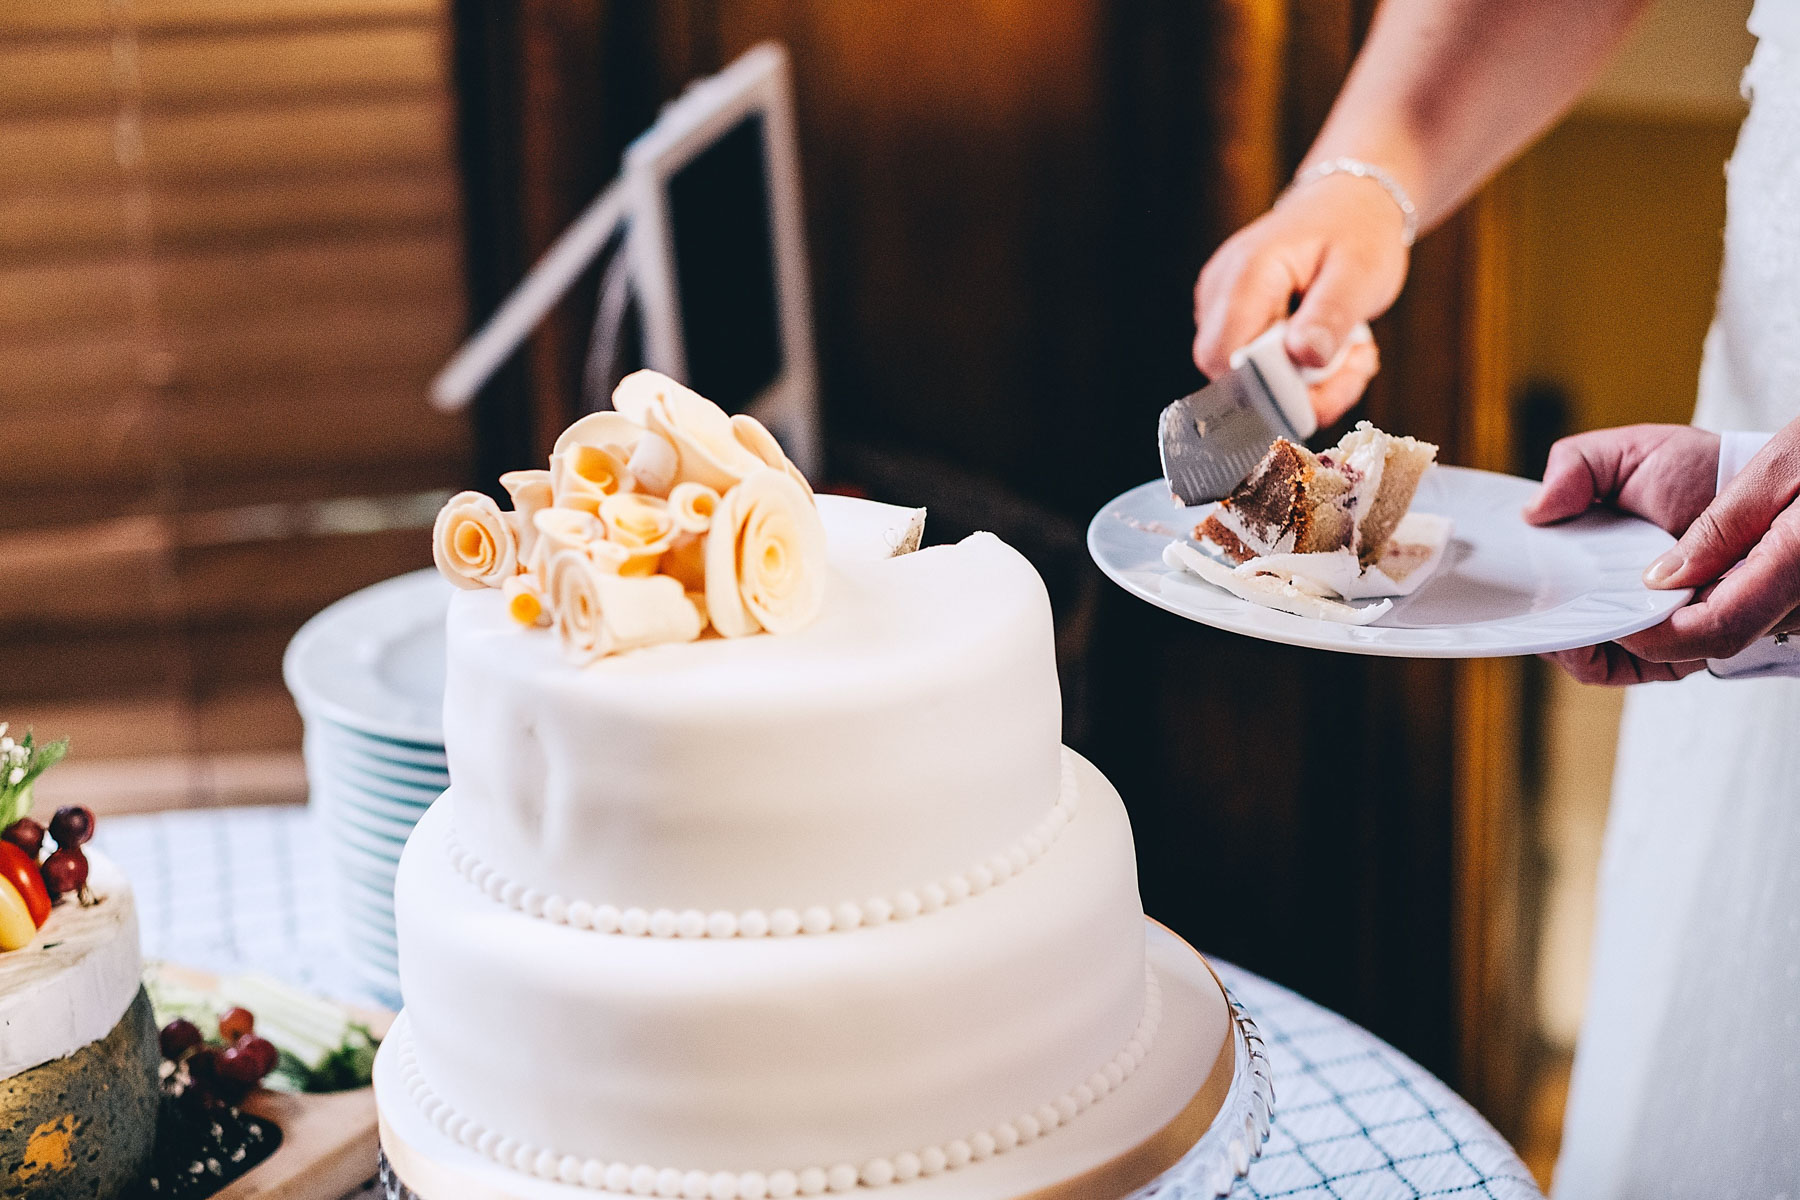 Wedding cake is cut by the bride